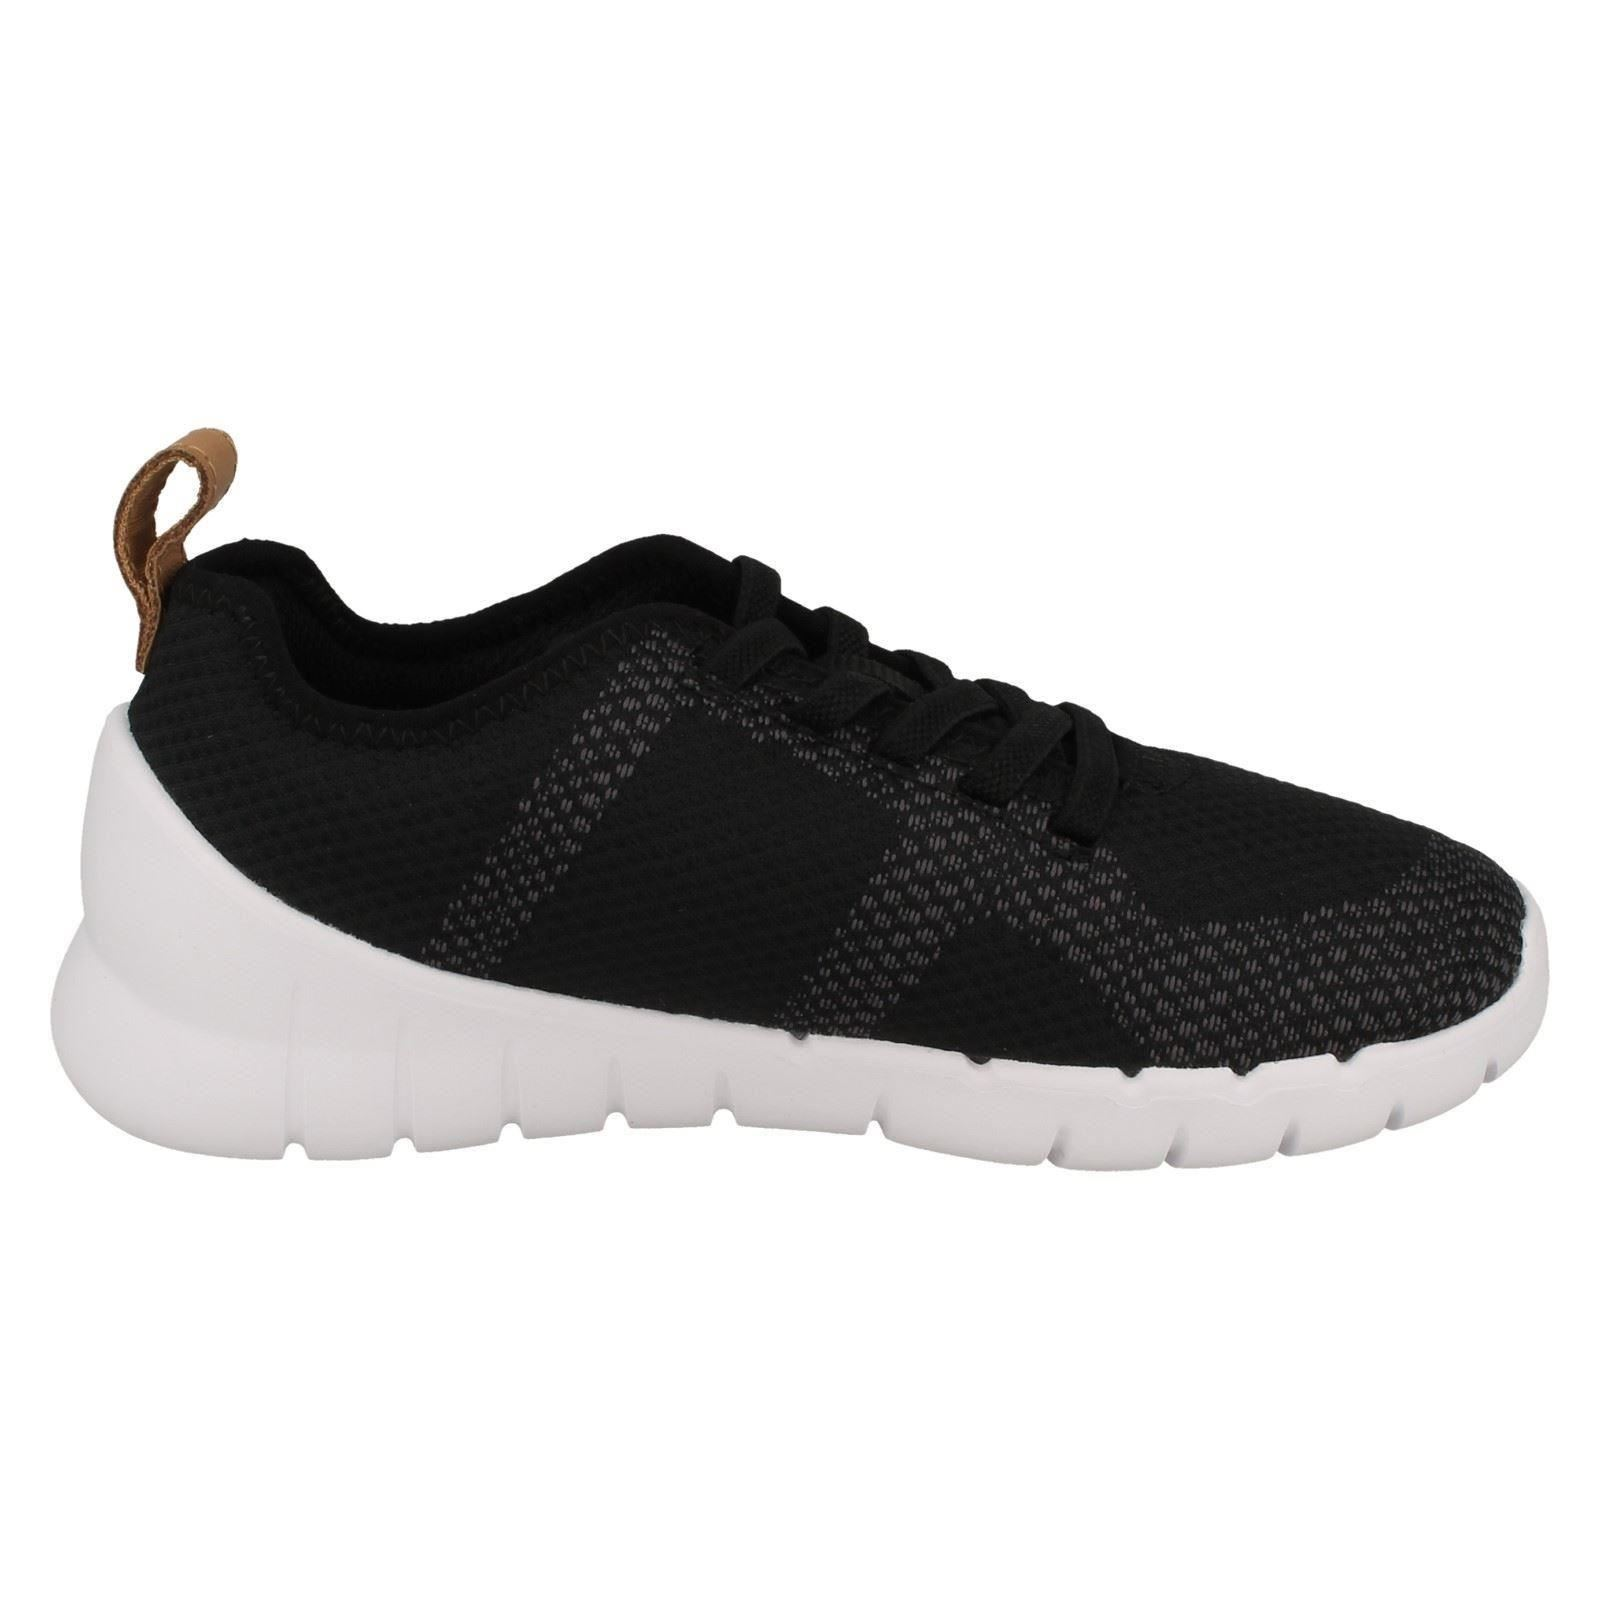 82038652b420 Childrens-Boys-Girls-Clarks-Trainers-Sprint-Flux thumbnail 7